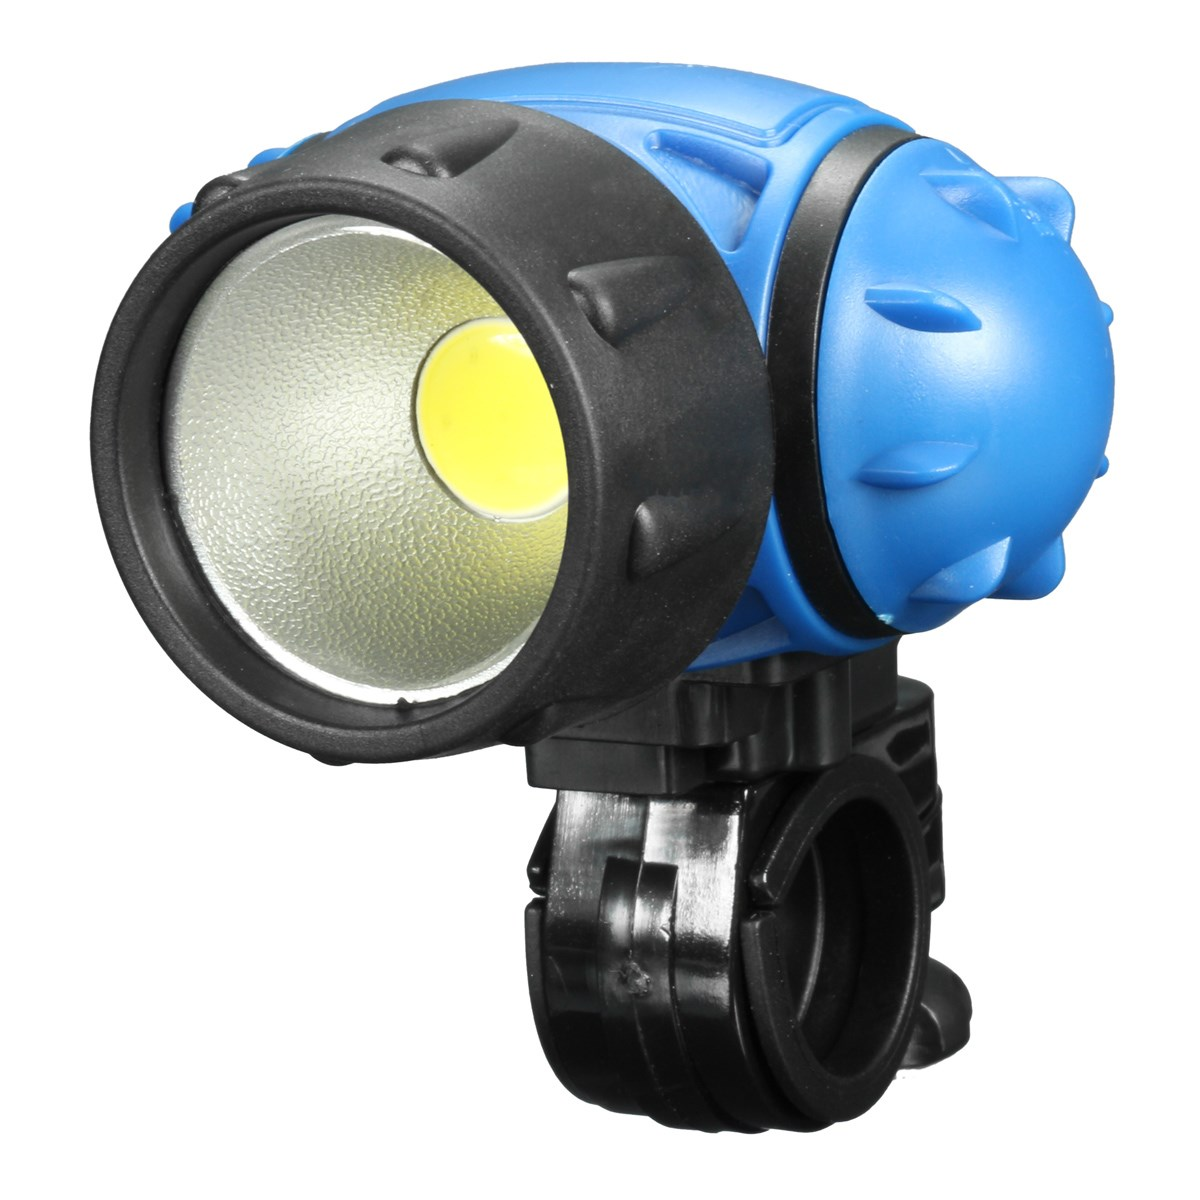 OUTERDO MTB Road Mountain Bike Ultra Bright LED Front Light Bicycle COB LED Headlight Cycling Head Light Bicycle Accessories